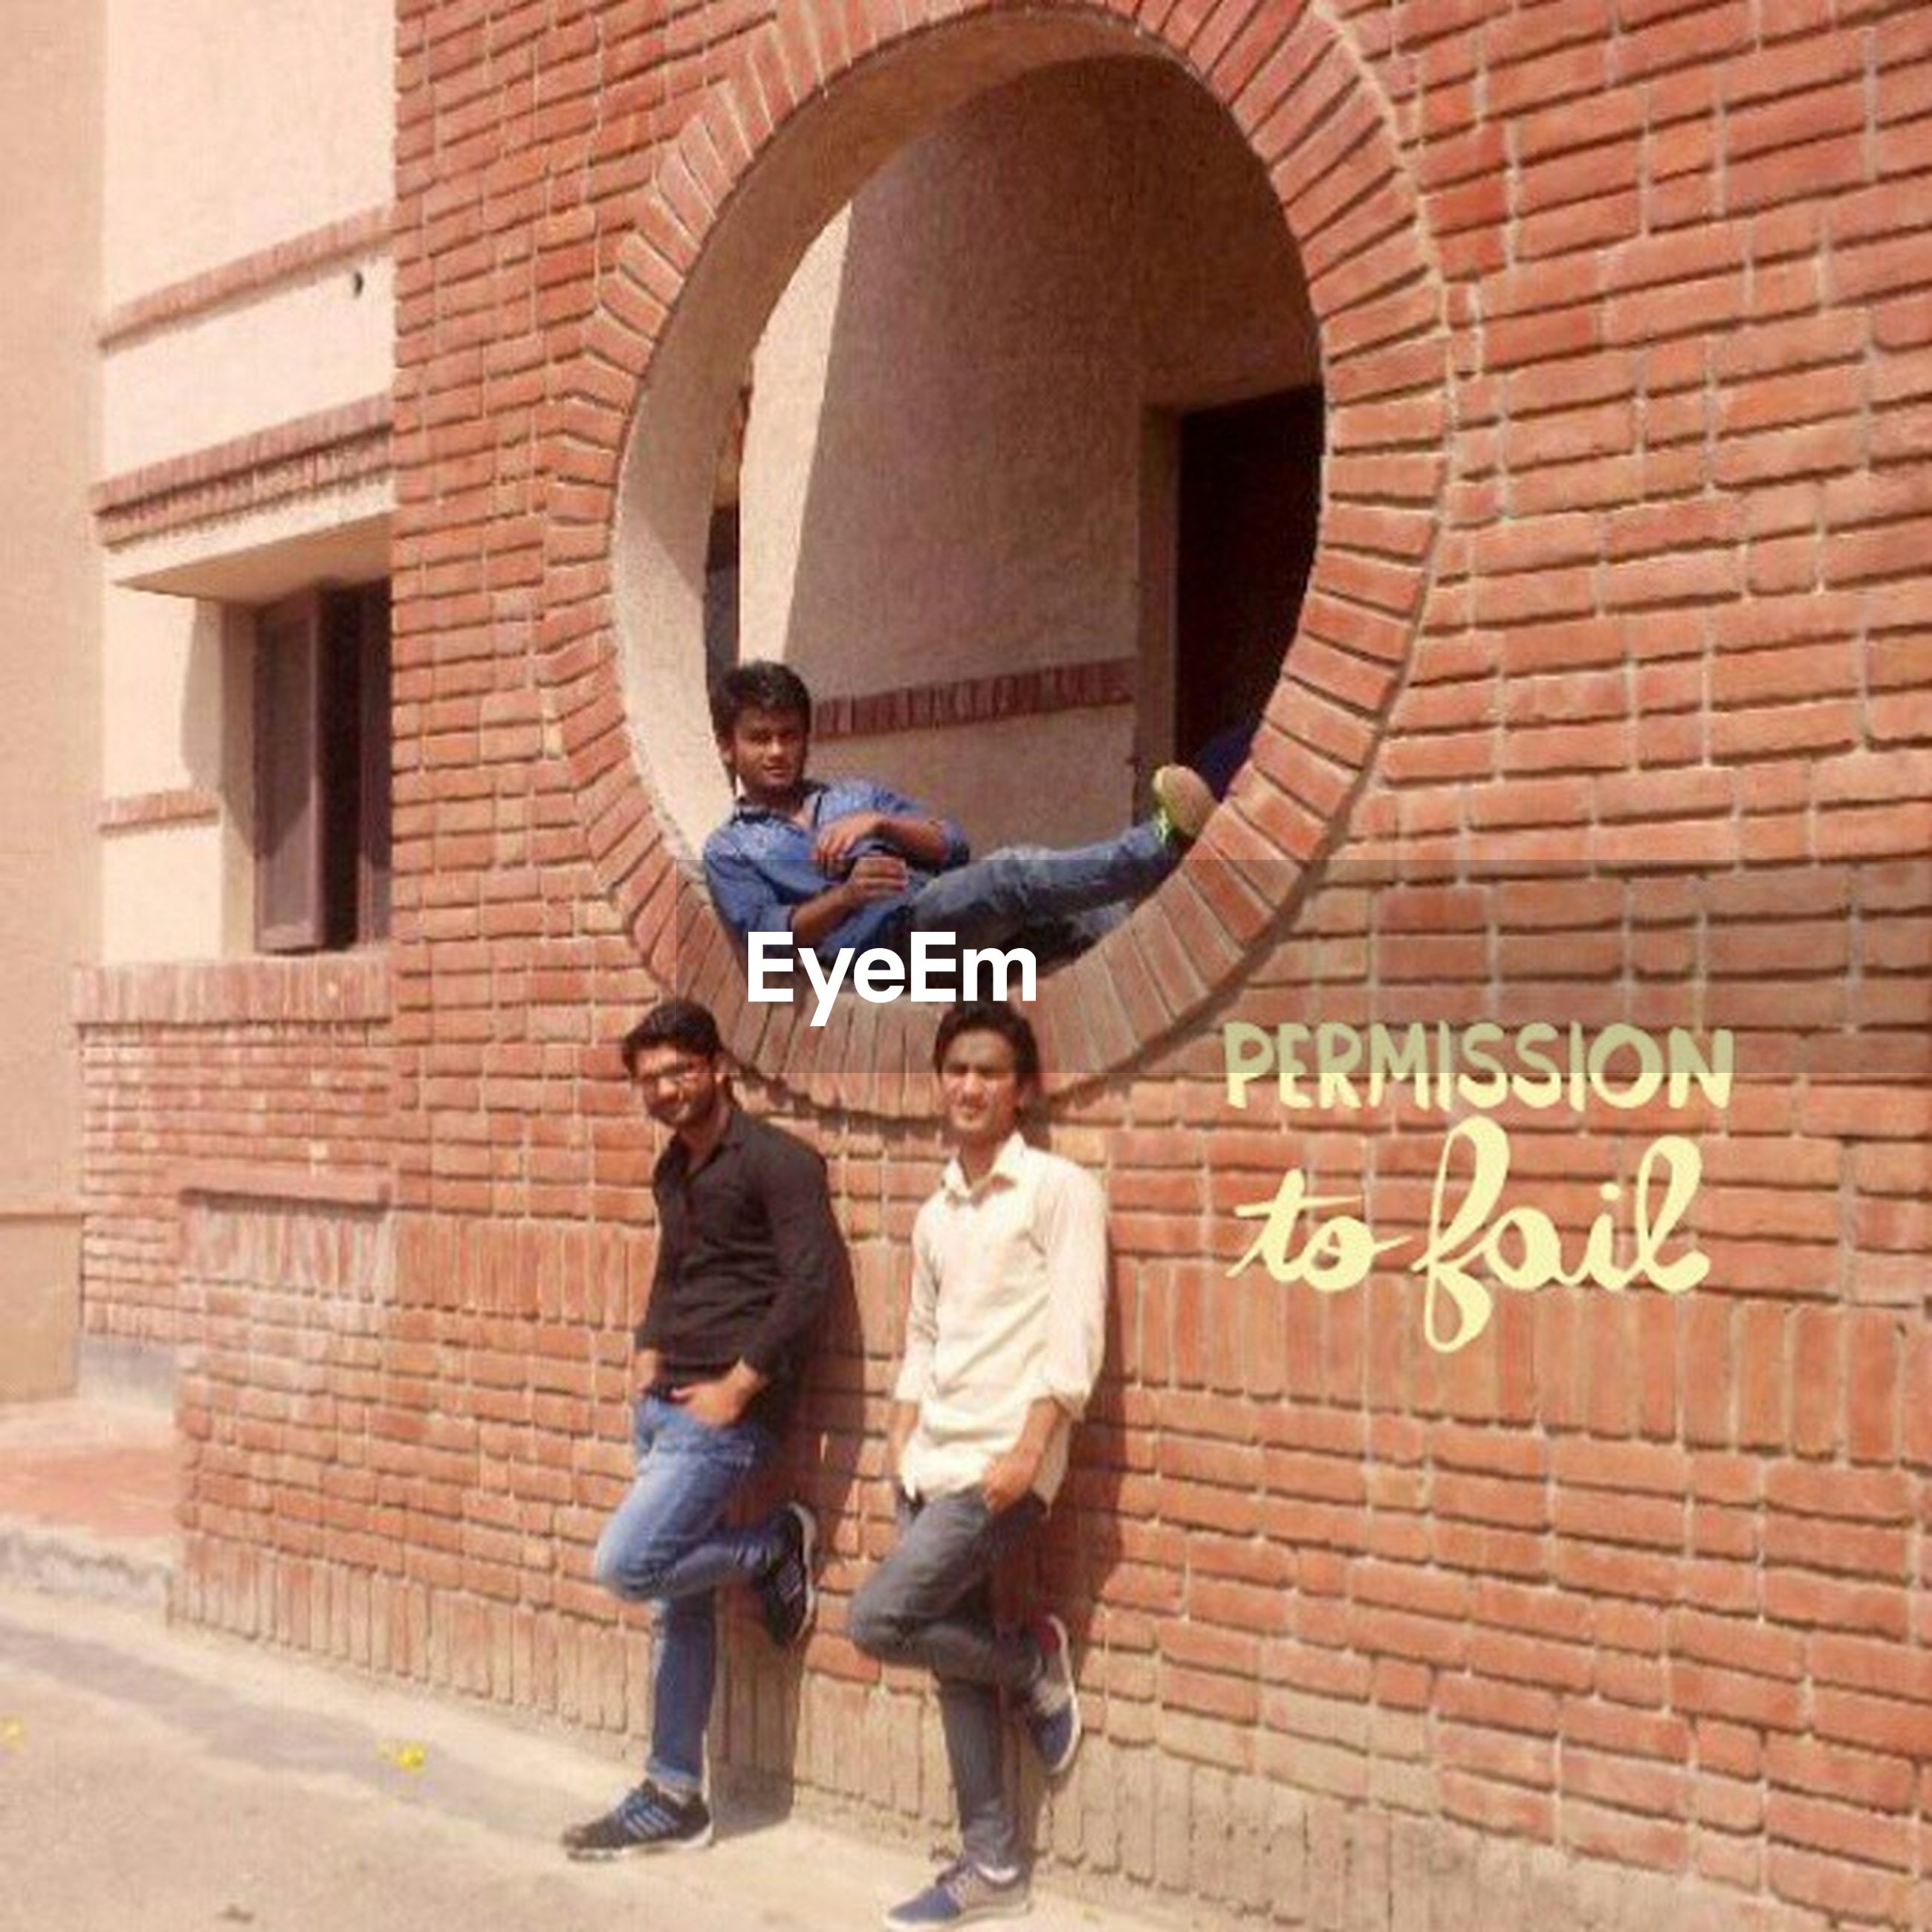 building exterior, full length, architecture, built structure, lifestyles, leisure activity, casual clothing, brick wall, text, men, young adult, communication, front view, person, wall - building feature, young men, standing, holding